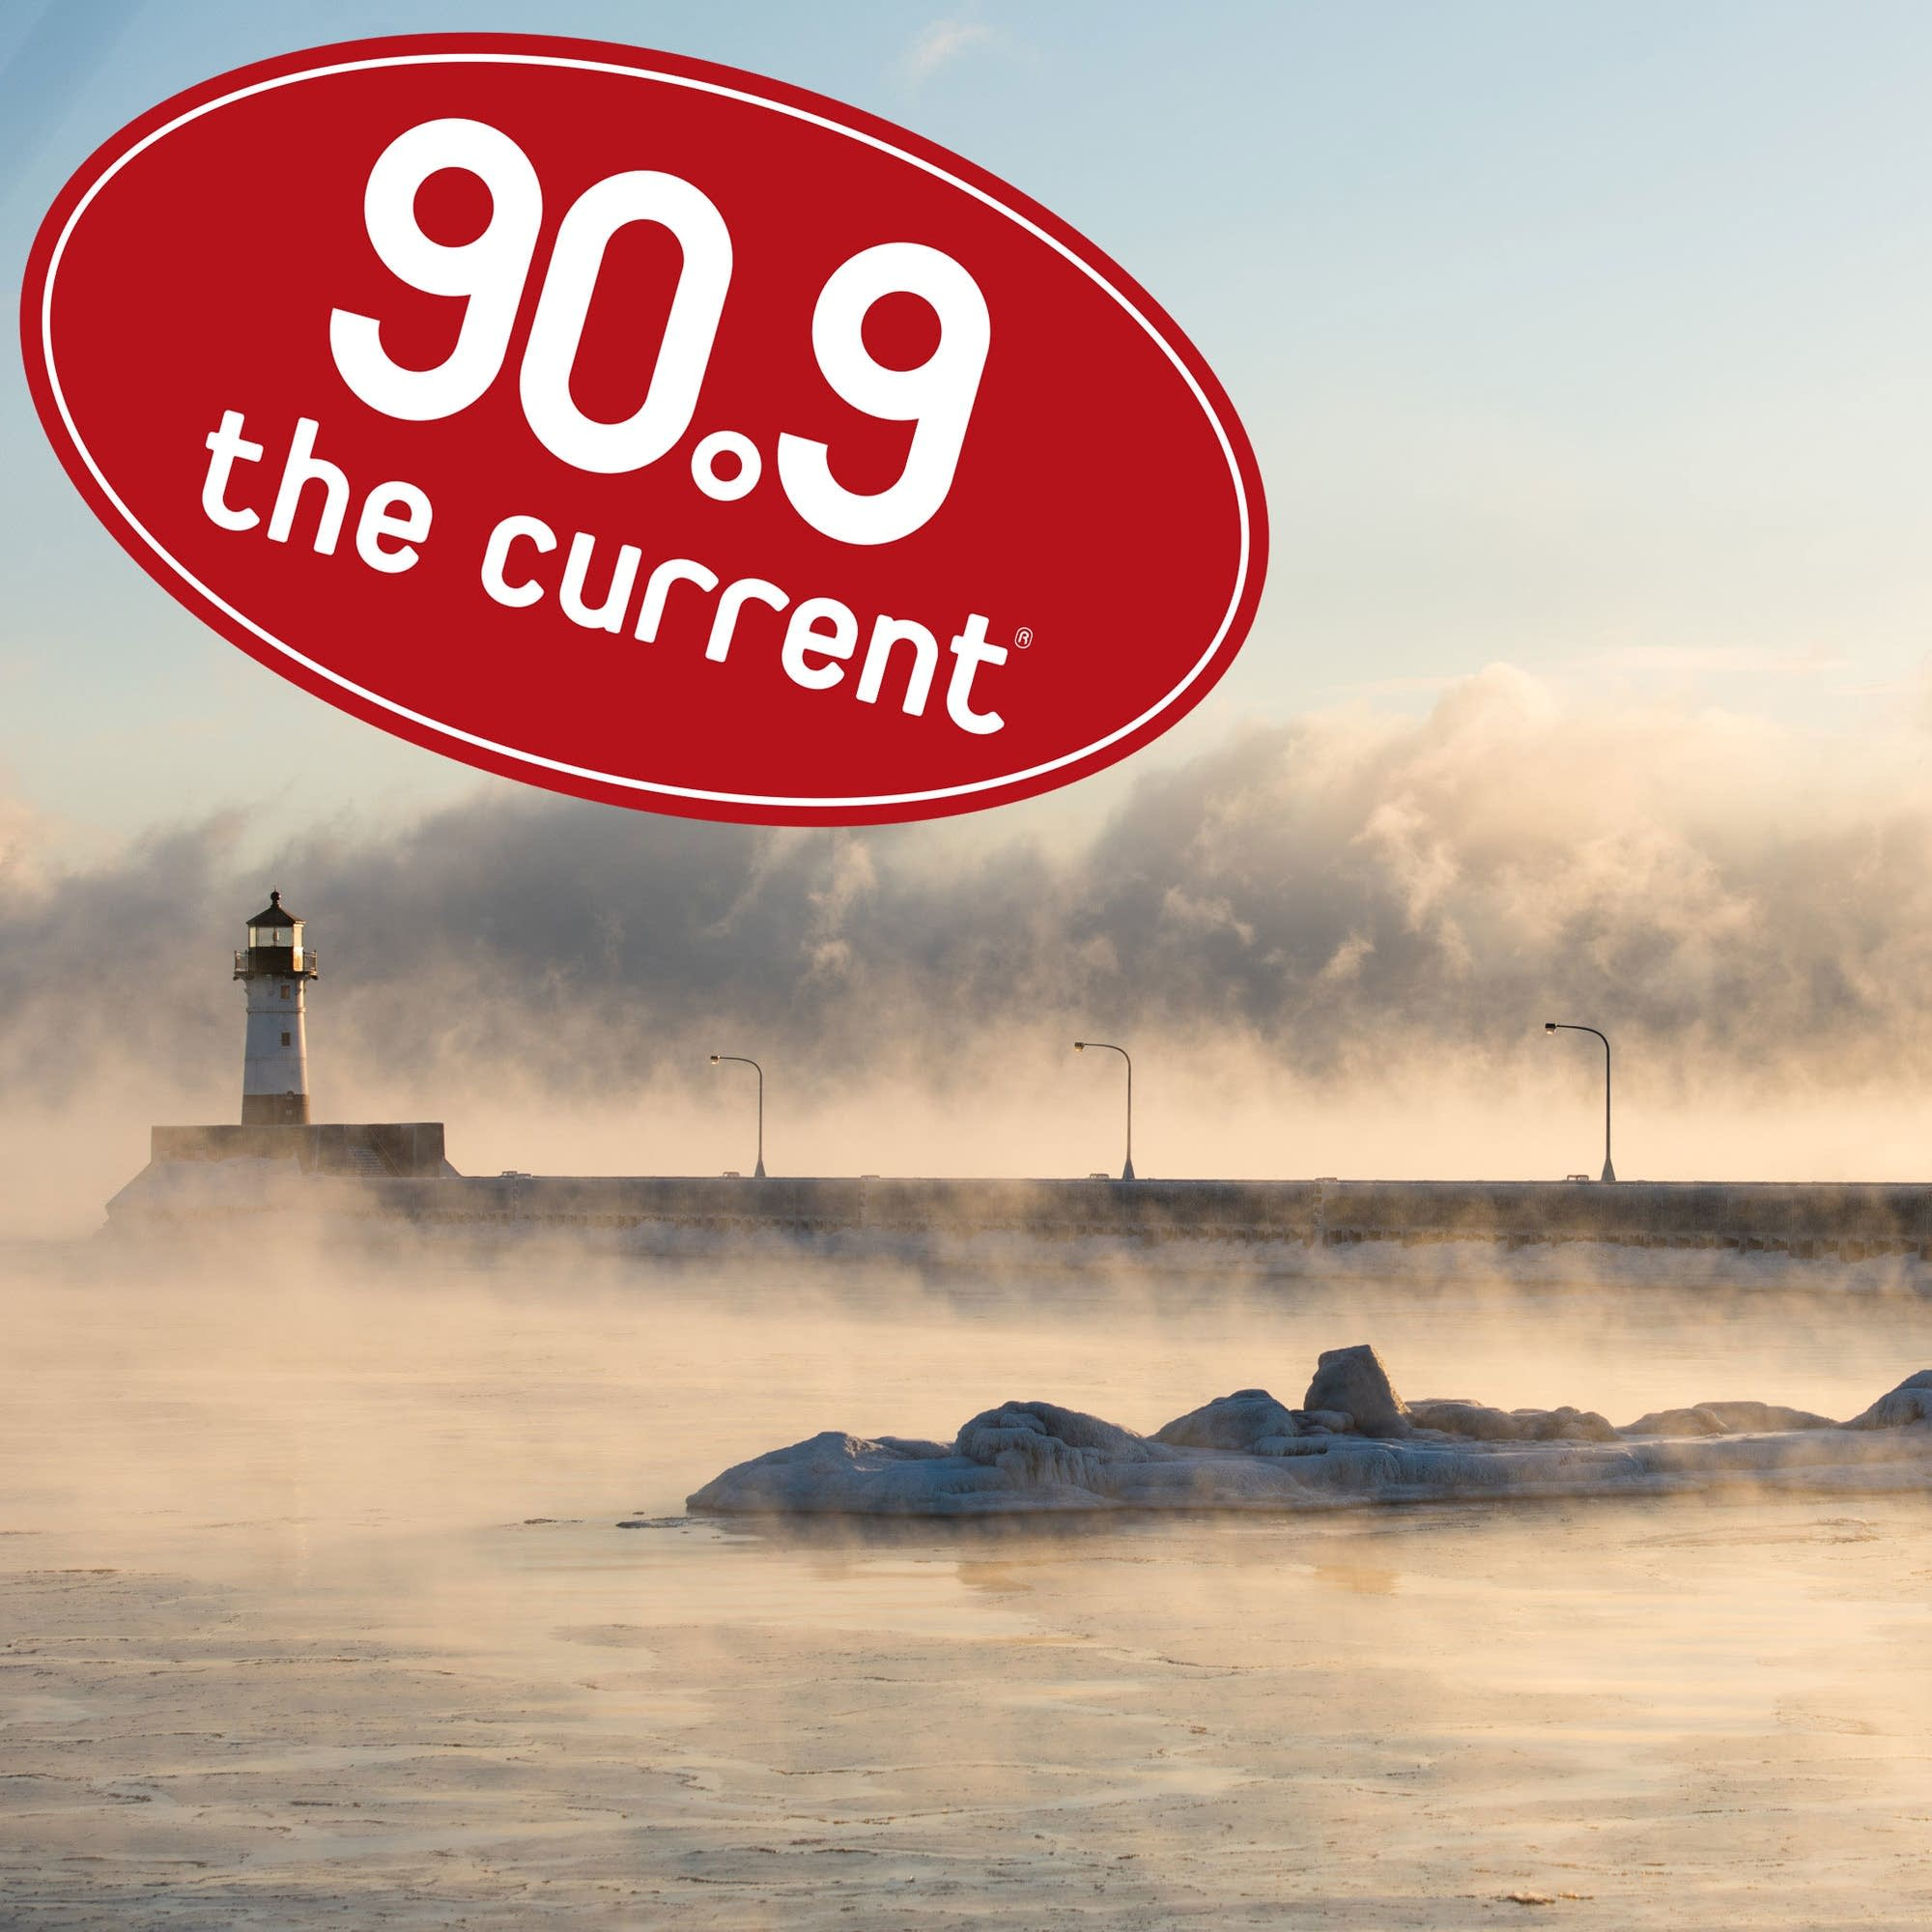 Hear The Current at 90.9 FM in Duluth